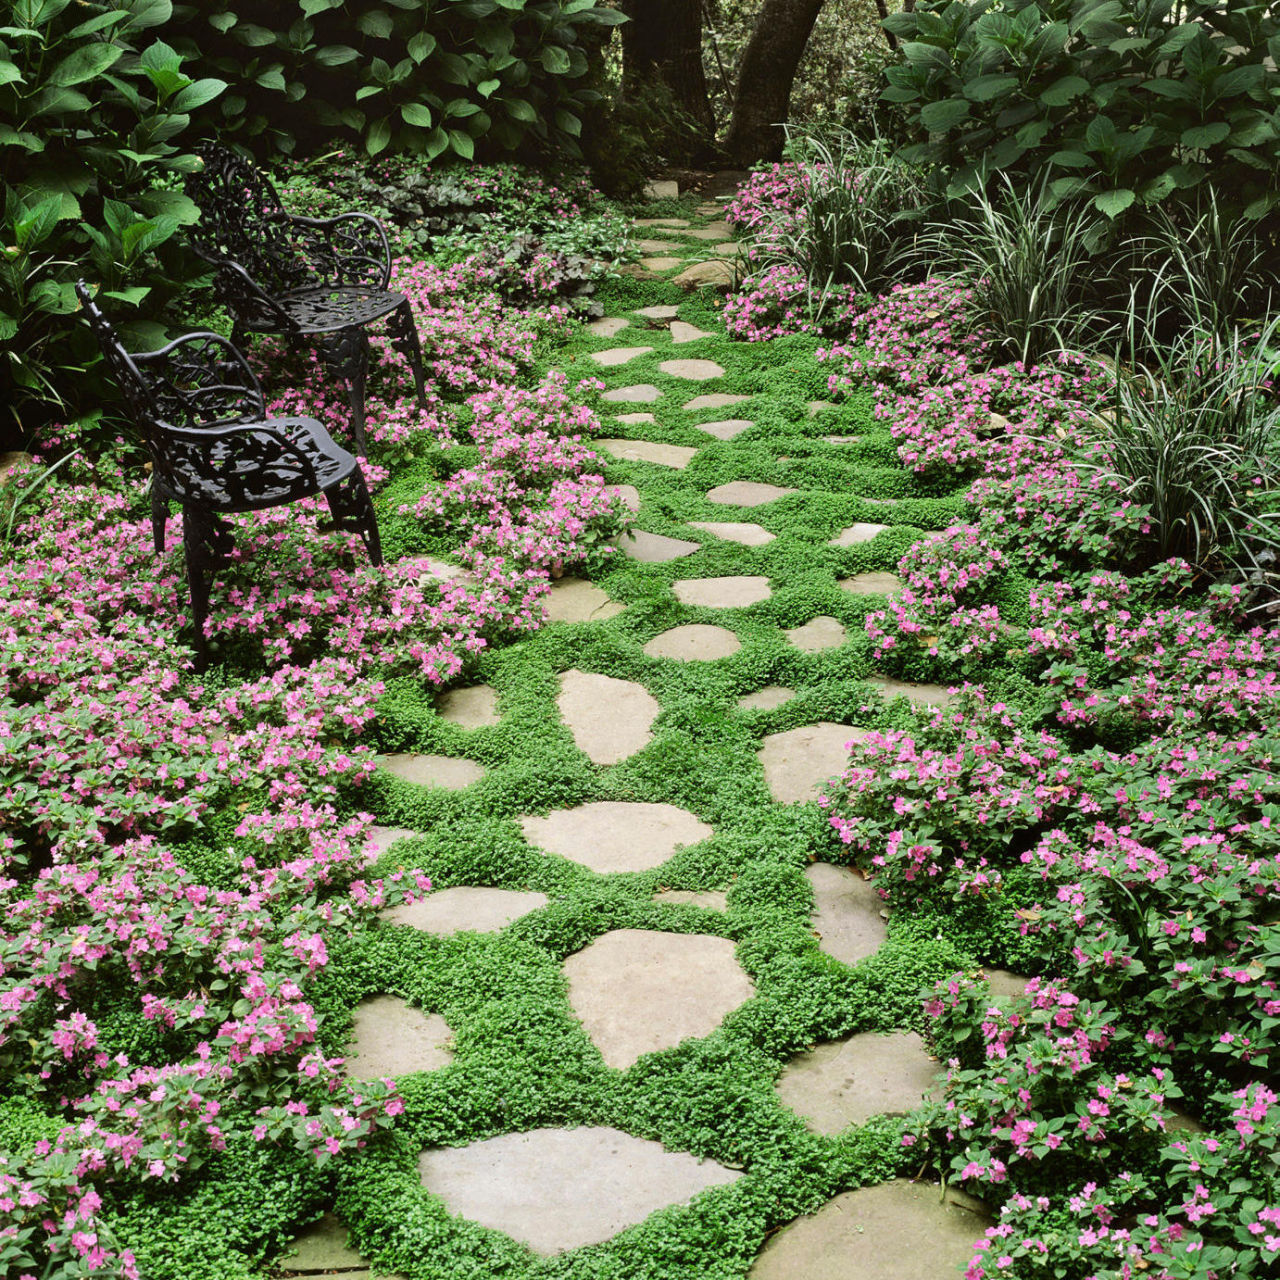 How to plant ground cover between pavers - How To Plant Ground Cover Between Pavers 46